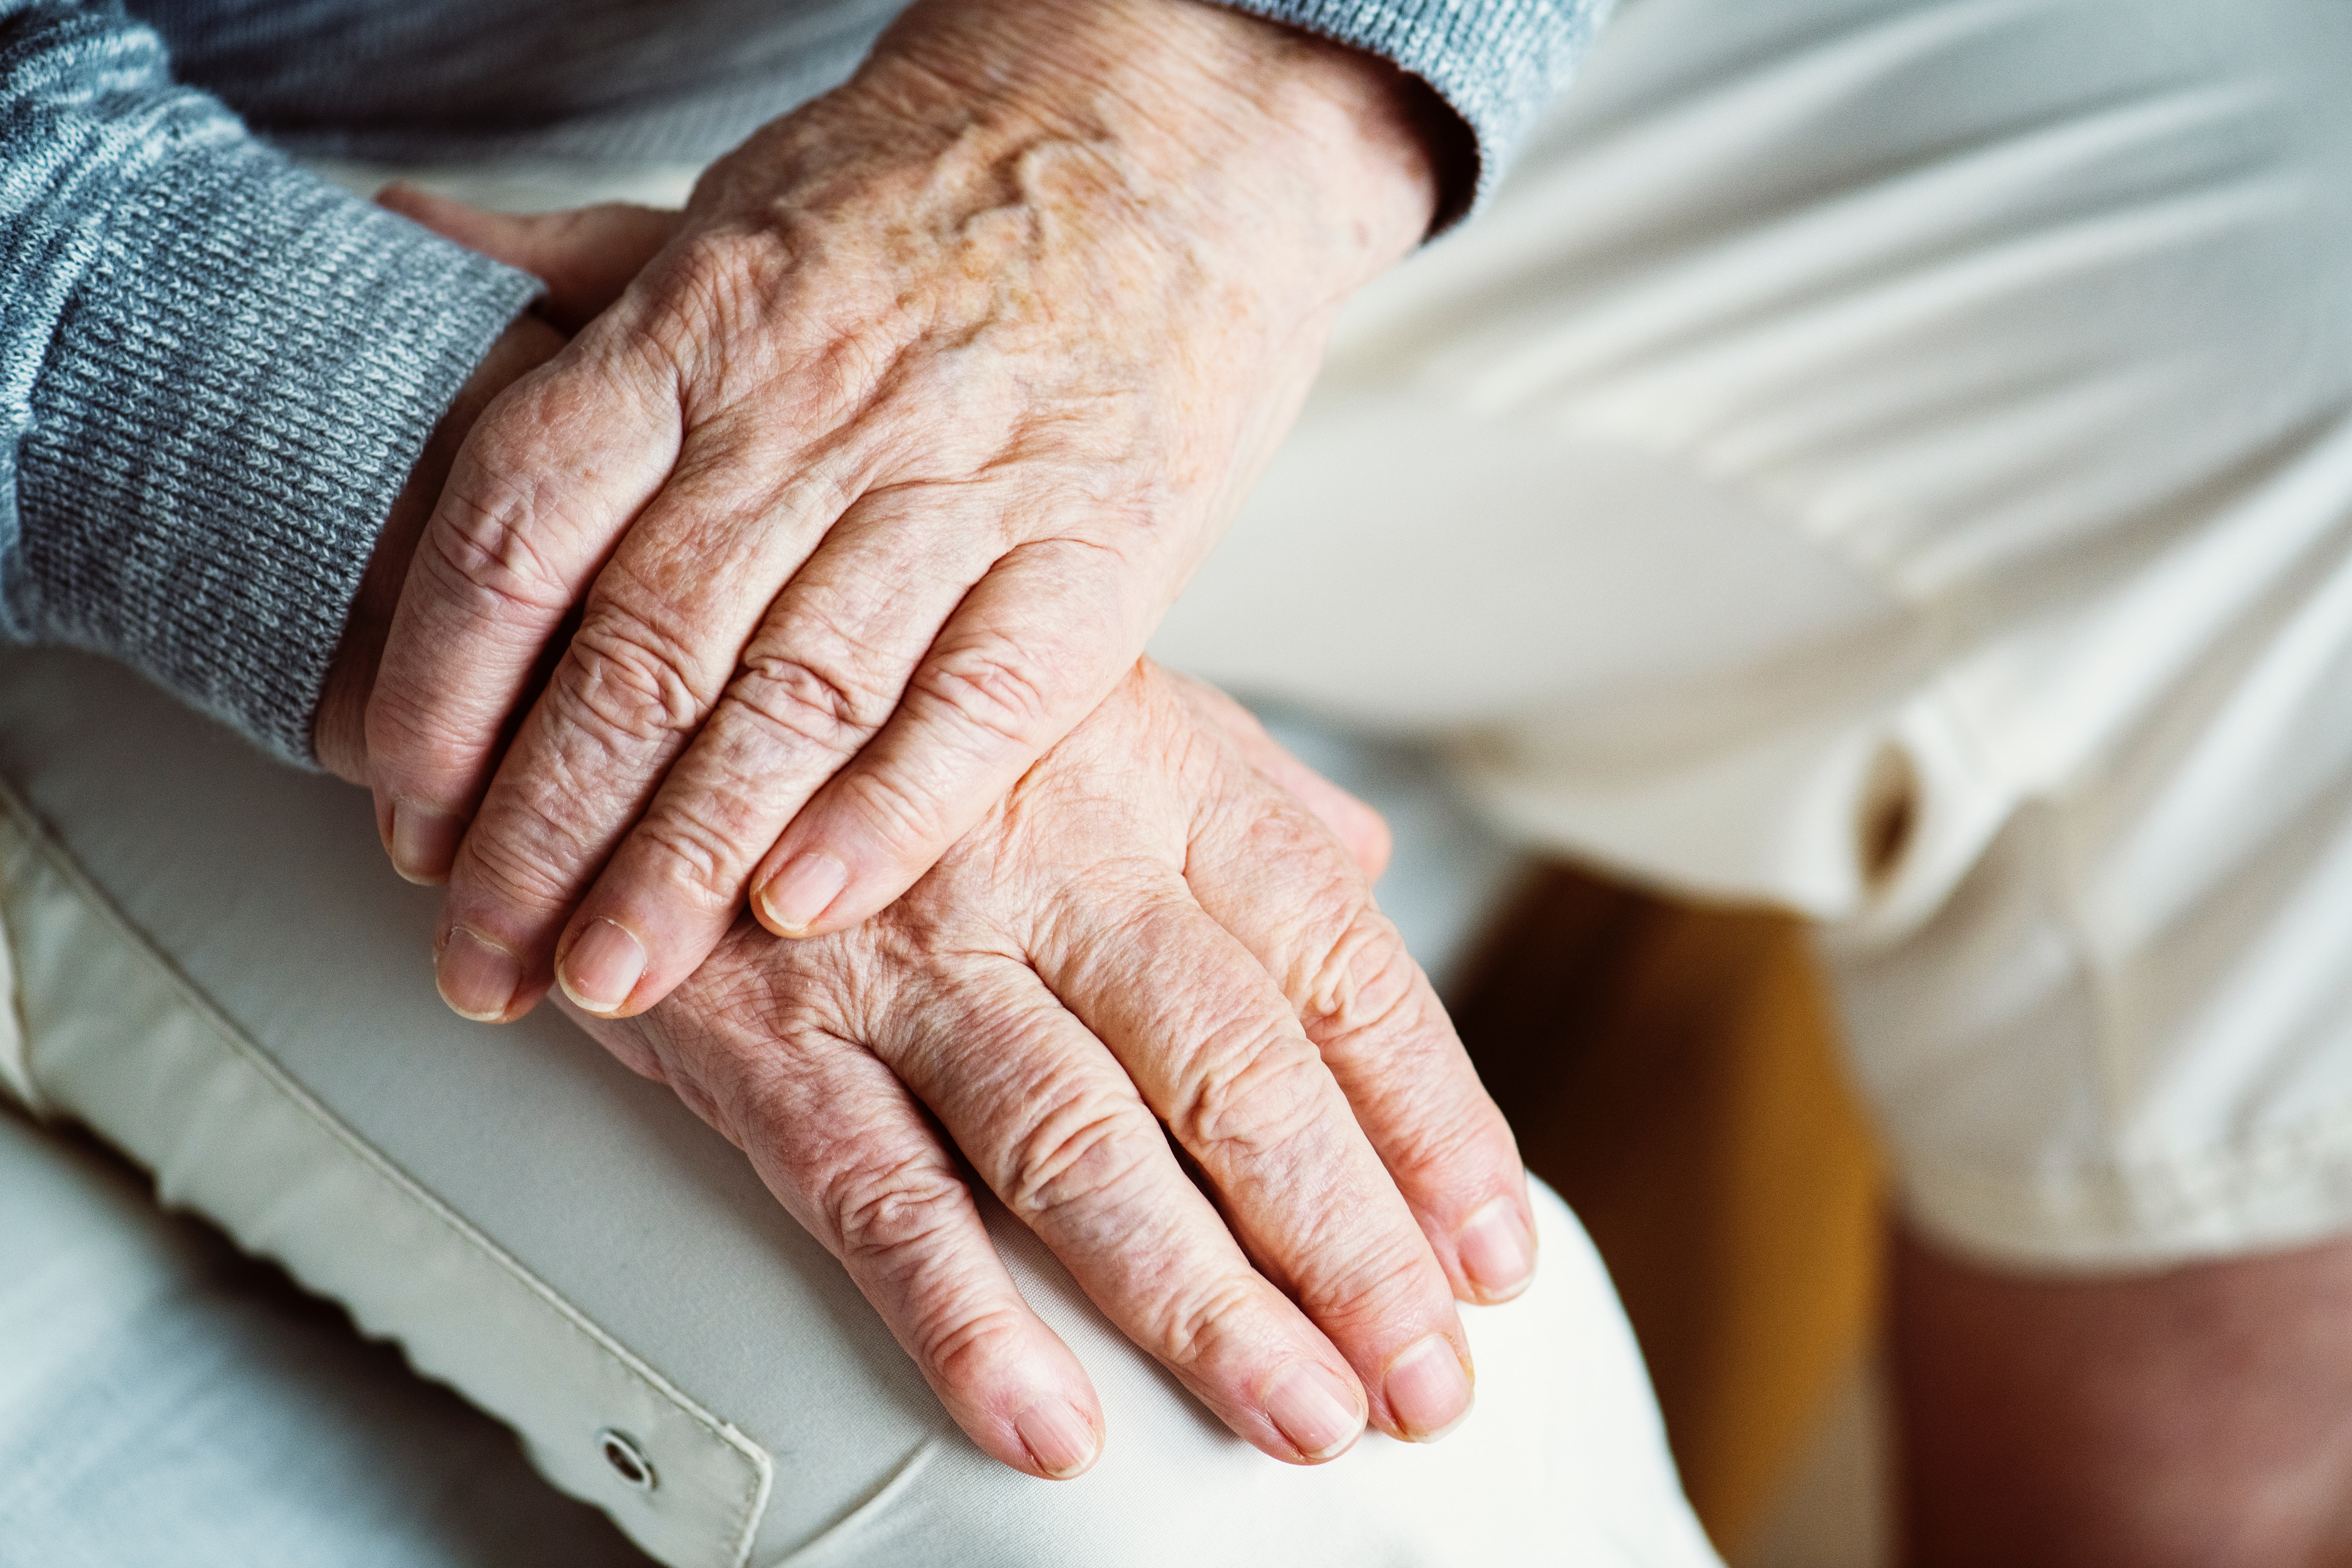 Things you need to consider for your old age